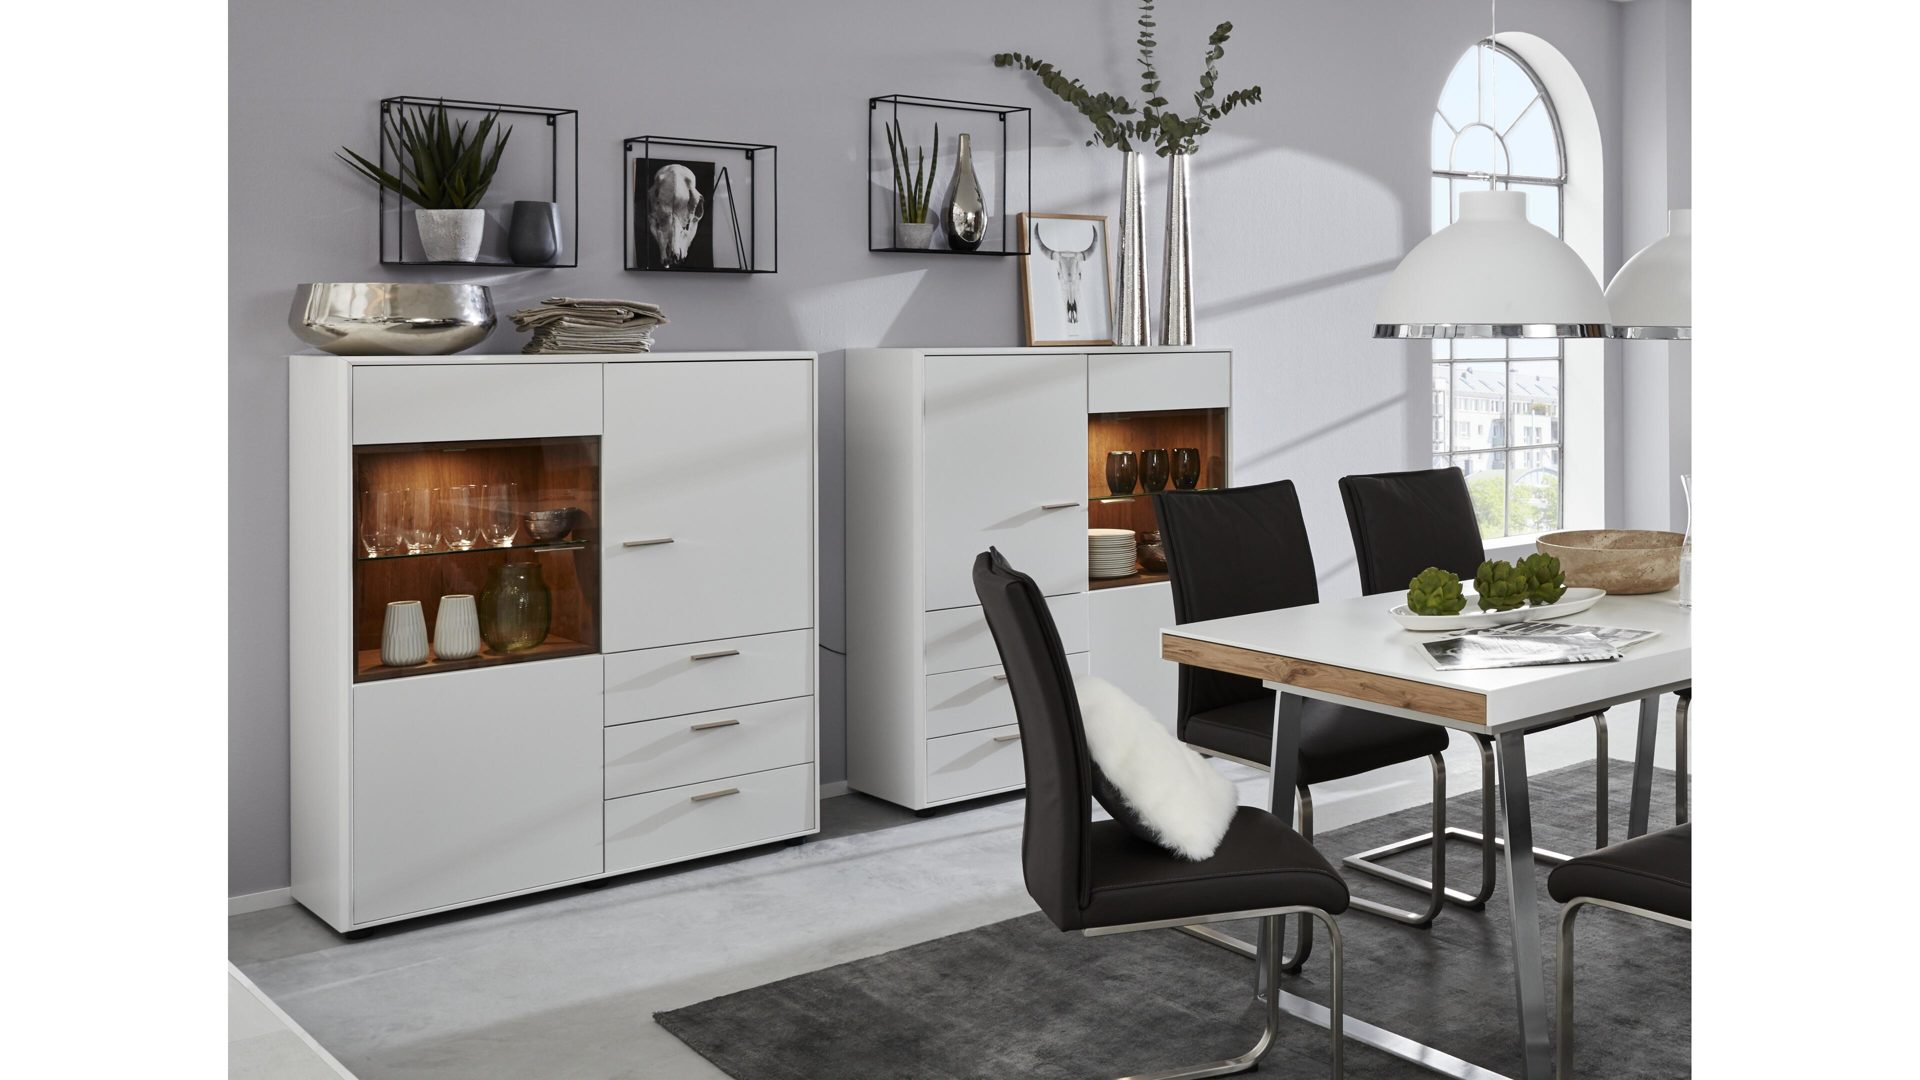 Esszimmer Highboard Möbelhaus Thiex Gmbh Interliving Esszimmer Highboards